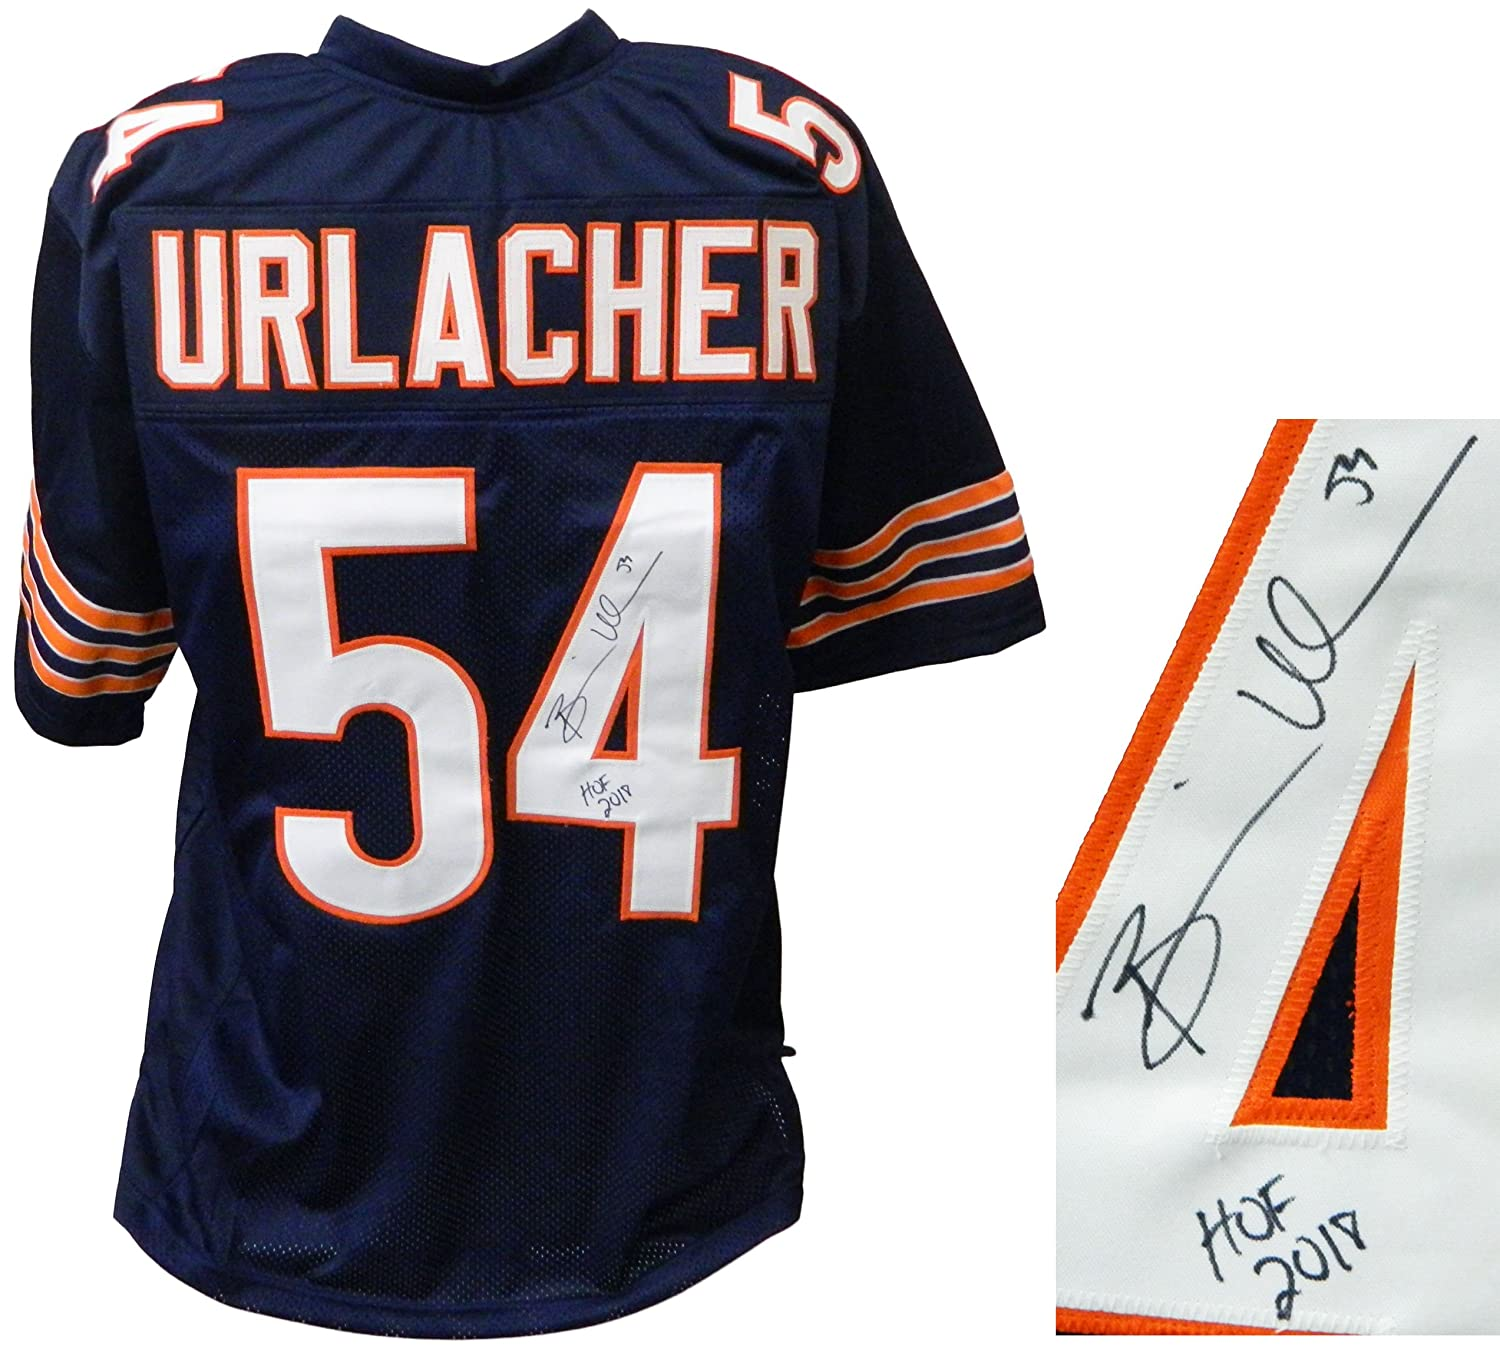 newest bebf6 5f65e Brian Urlacher Signed Navy Custom Football Jersey w/HOF 2018 ...